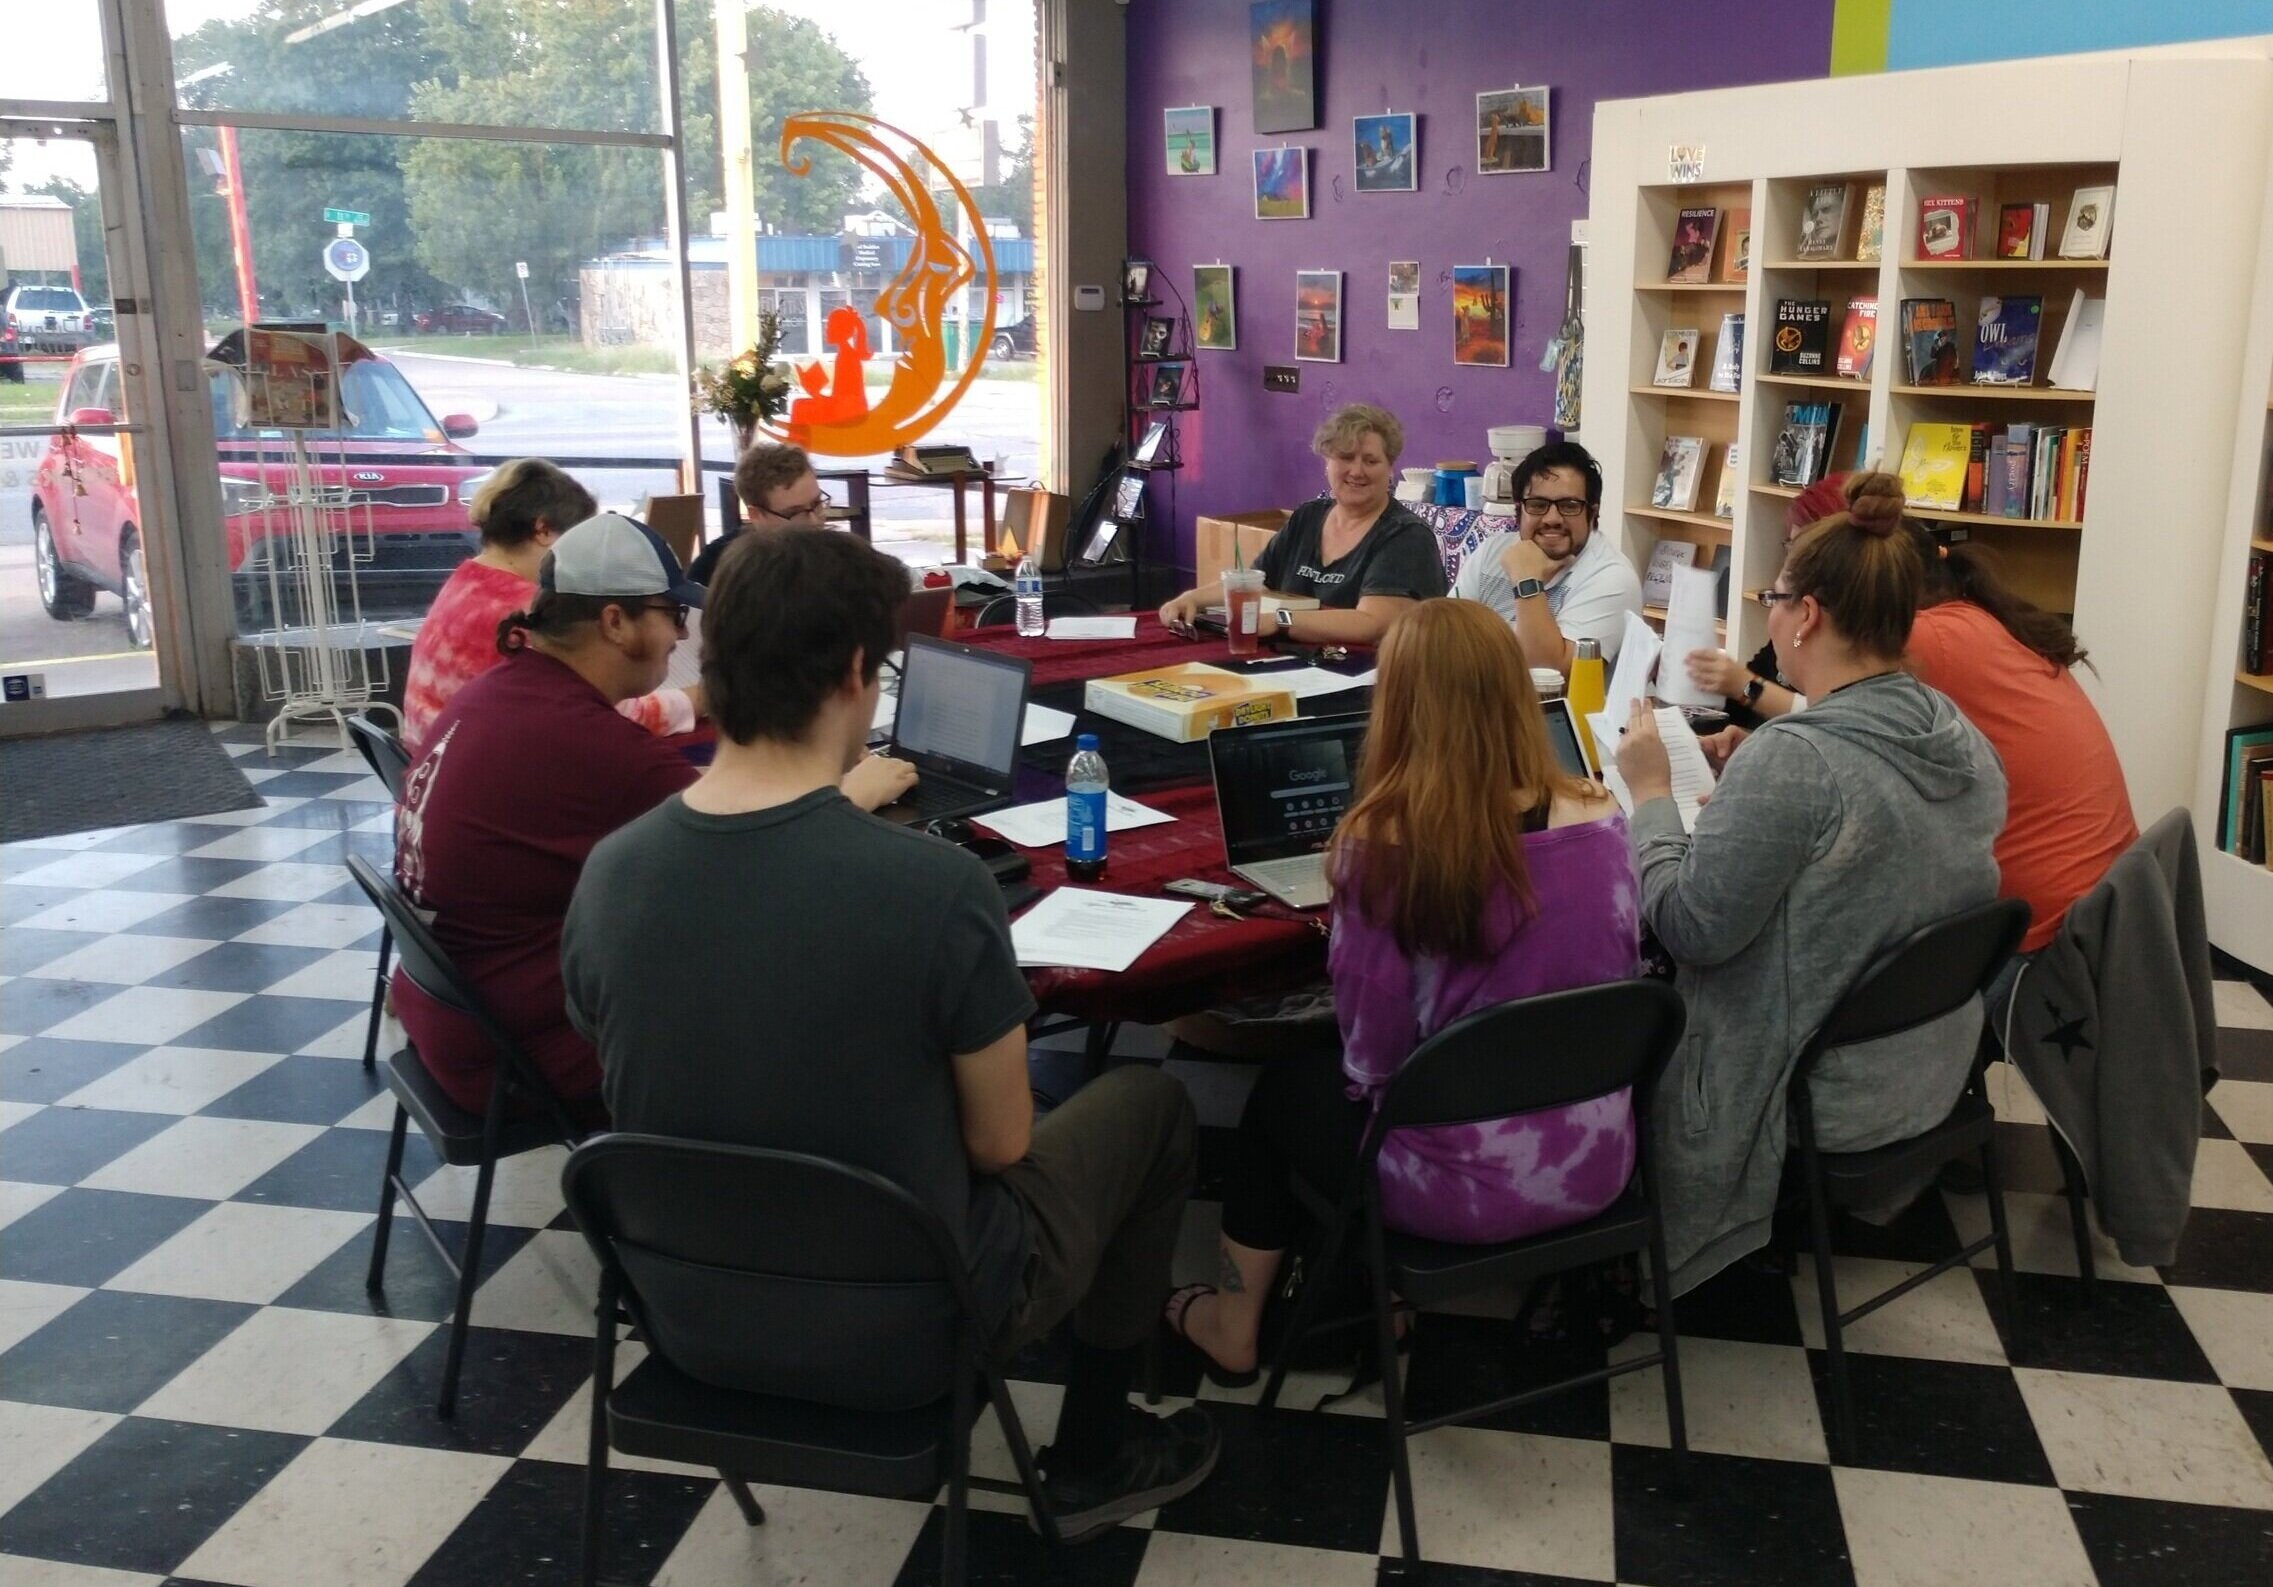 - Nevermore Edits runs two weekly writing workshops in Tulsa, Oklahoma. They are free and open to anyone who wishes to attend, regardless of skill level, genre preferences, and current story progress.